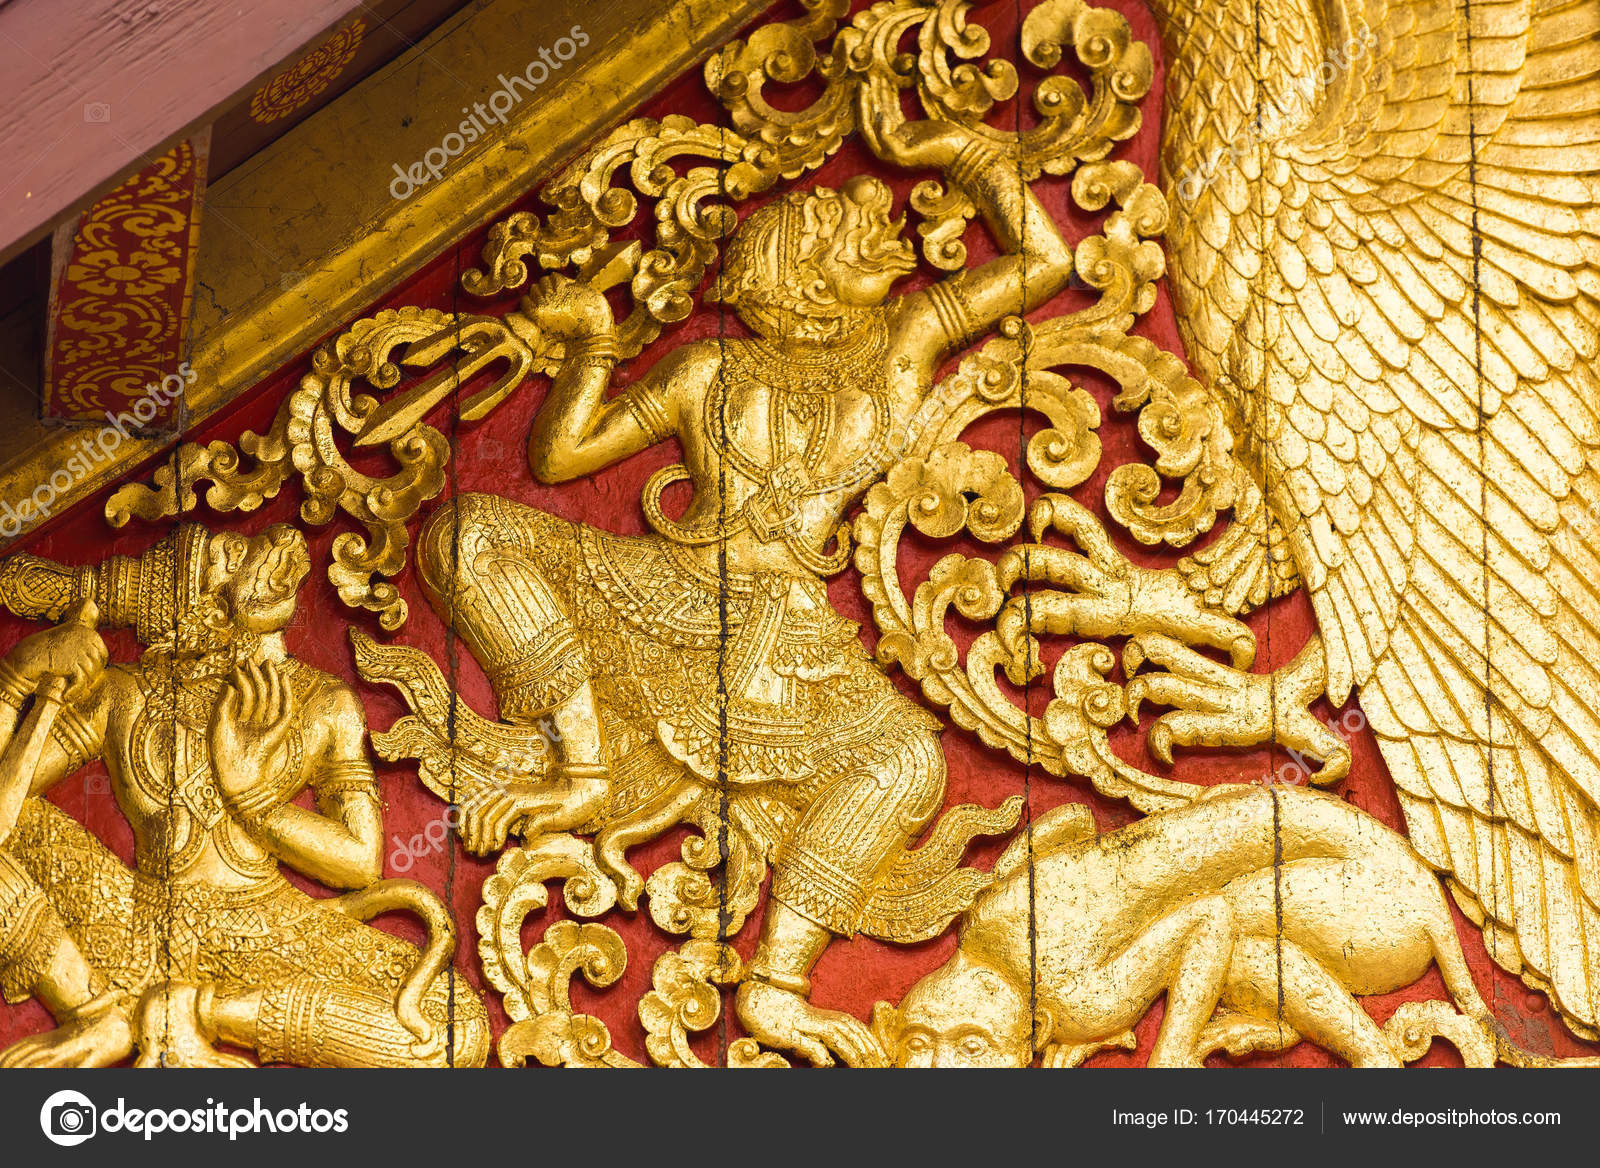 The bas-relief on the wall of the temple in Louangphabang, Laos ...